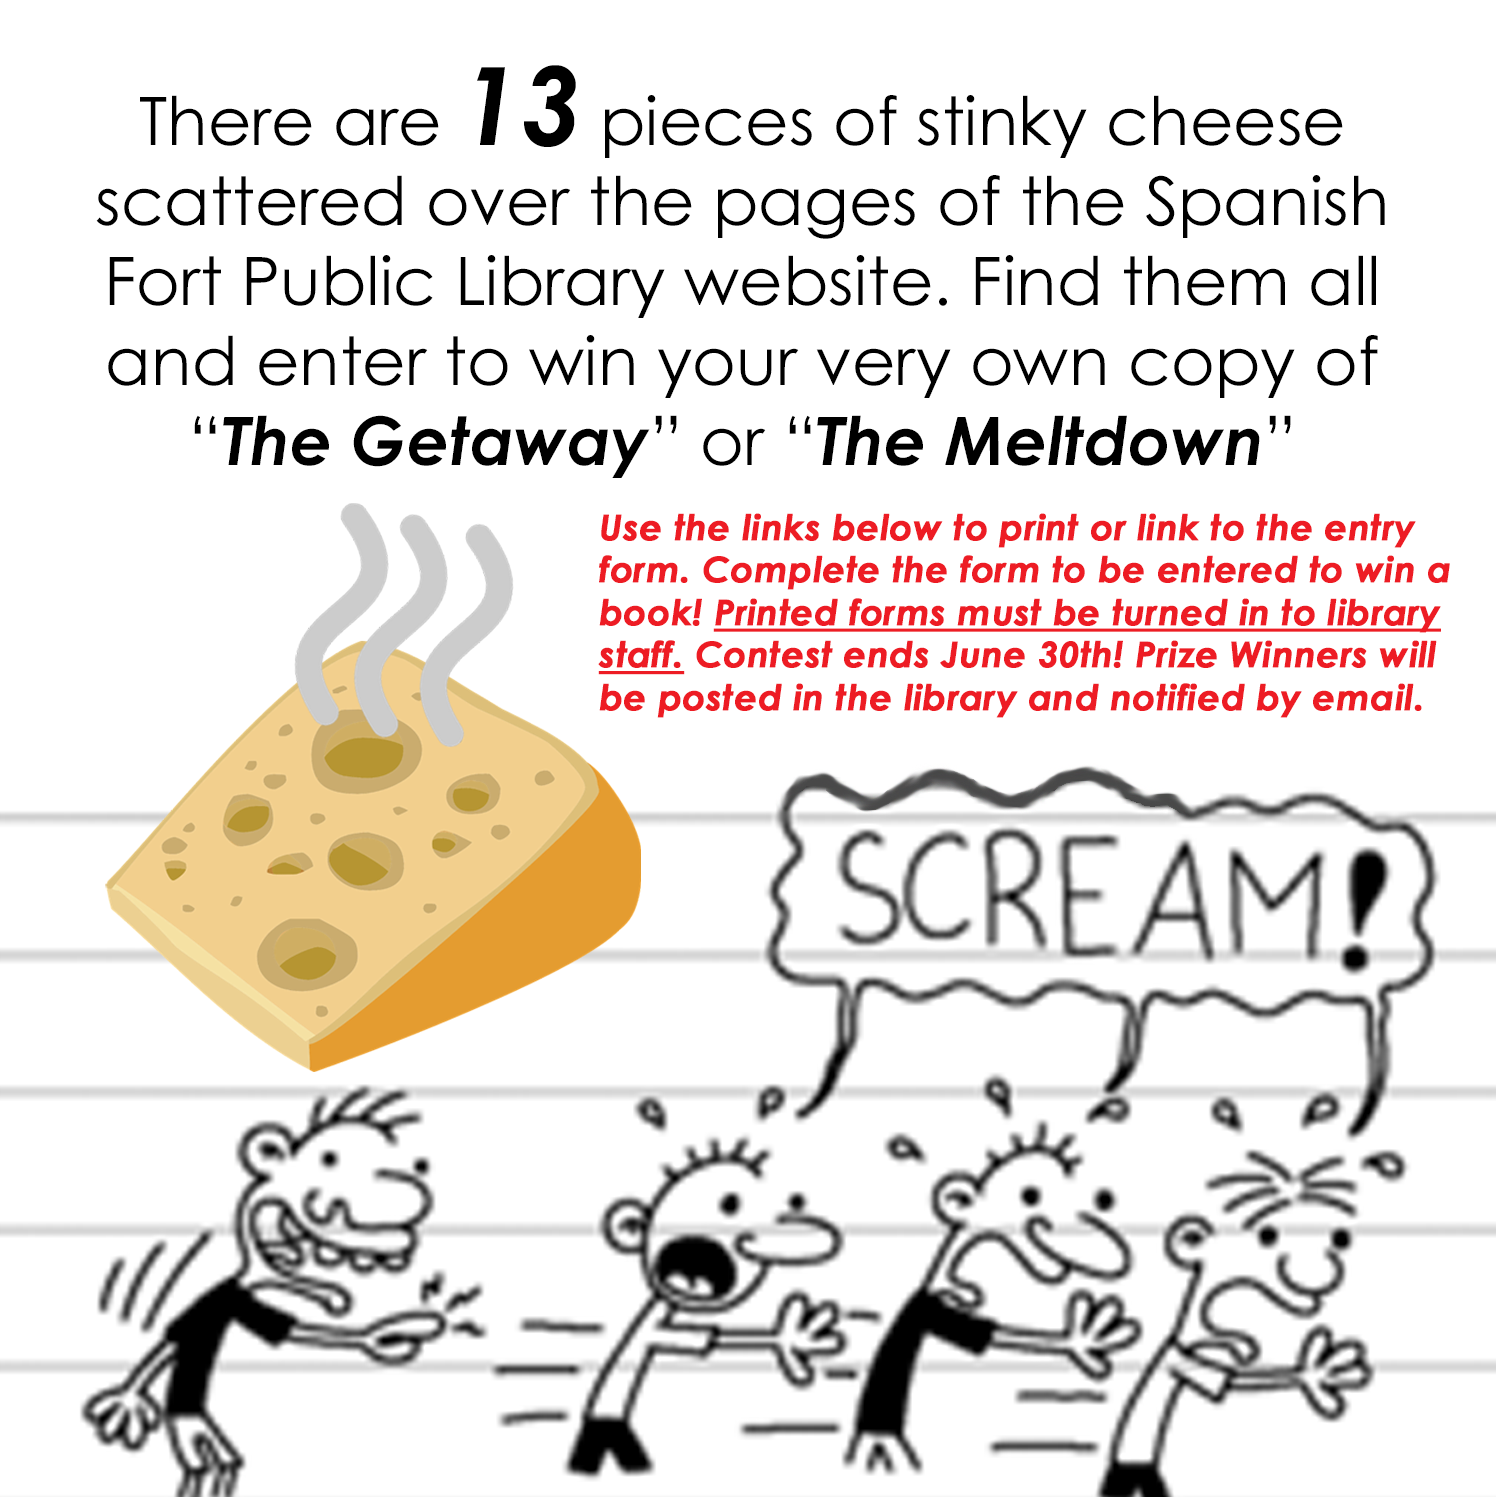 """The Diary of a Wimpy Kid Cheese Touch Challenge: find the 13 pieces of stinky cheese hidden throughout the website. When you find them all click on the contest entry form below this image to be entered to win your own copy of """"The Meltdown"""" or """"The Getaway"""" by Jeff Kinney. Printed forms must be turned in to library staff. Contest ends June 30th."""